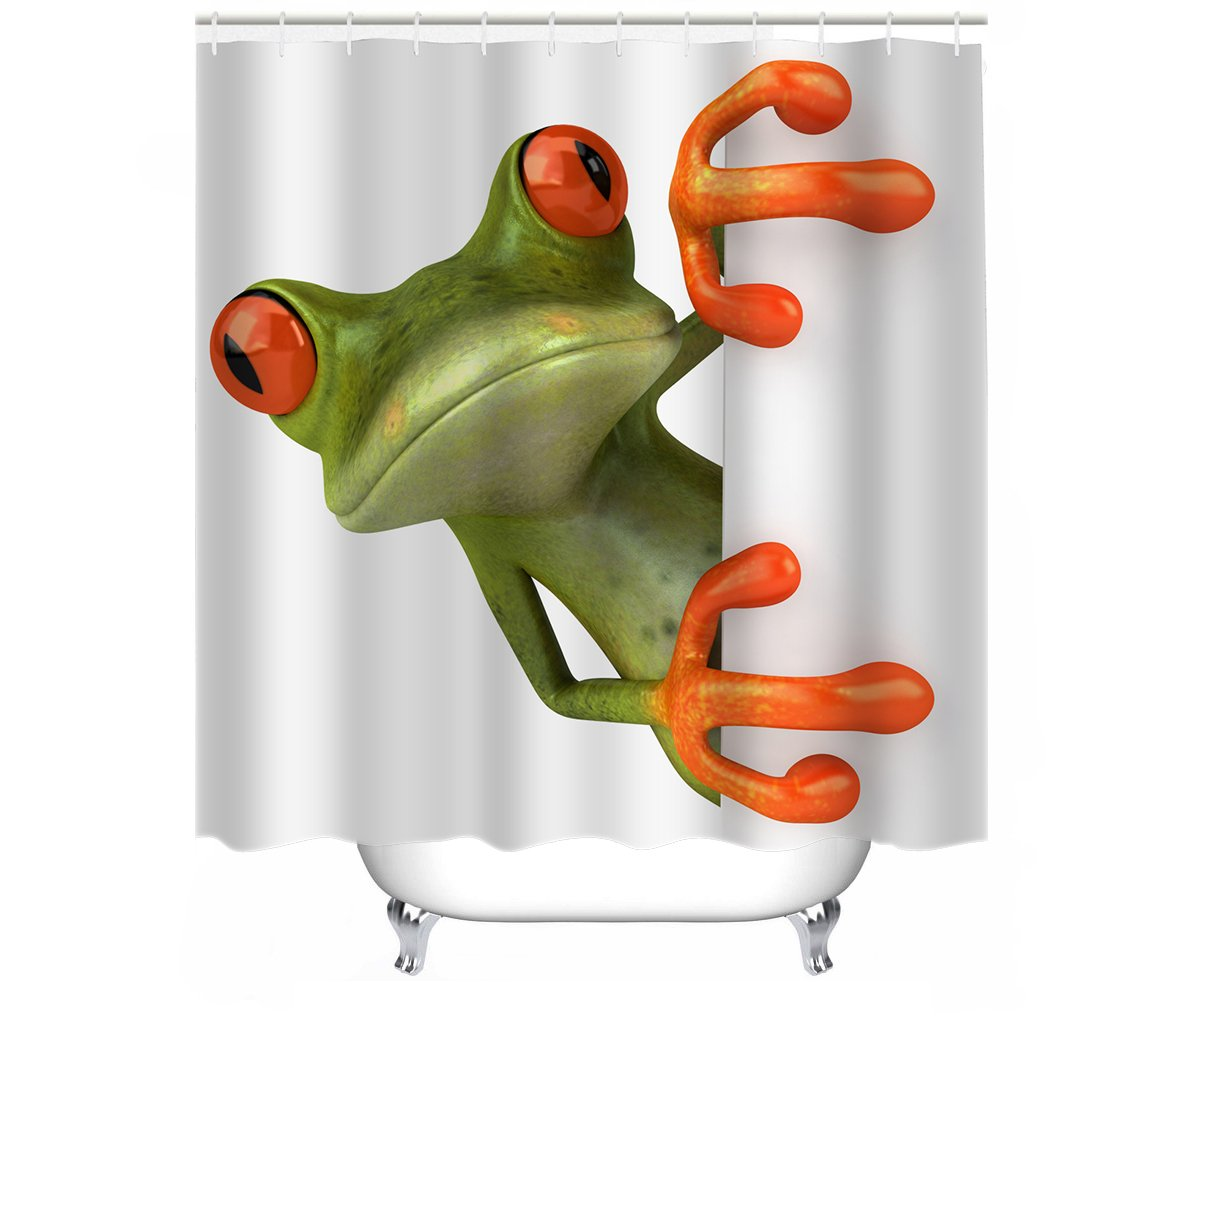 Cheerhunting Frog Shower Curtain Cute Porcelain Hiding Behind The Wall Bathroom Accessory With Hooks 72W X 72H Waterproof Fabric Decor